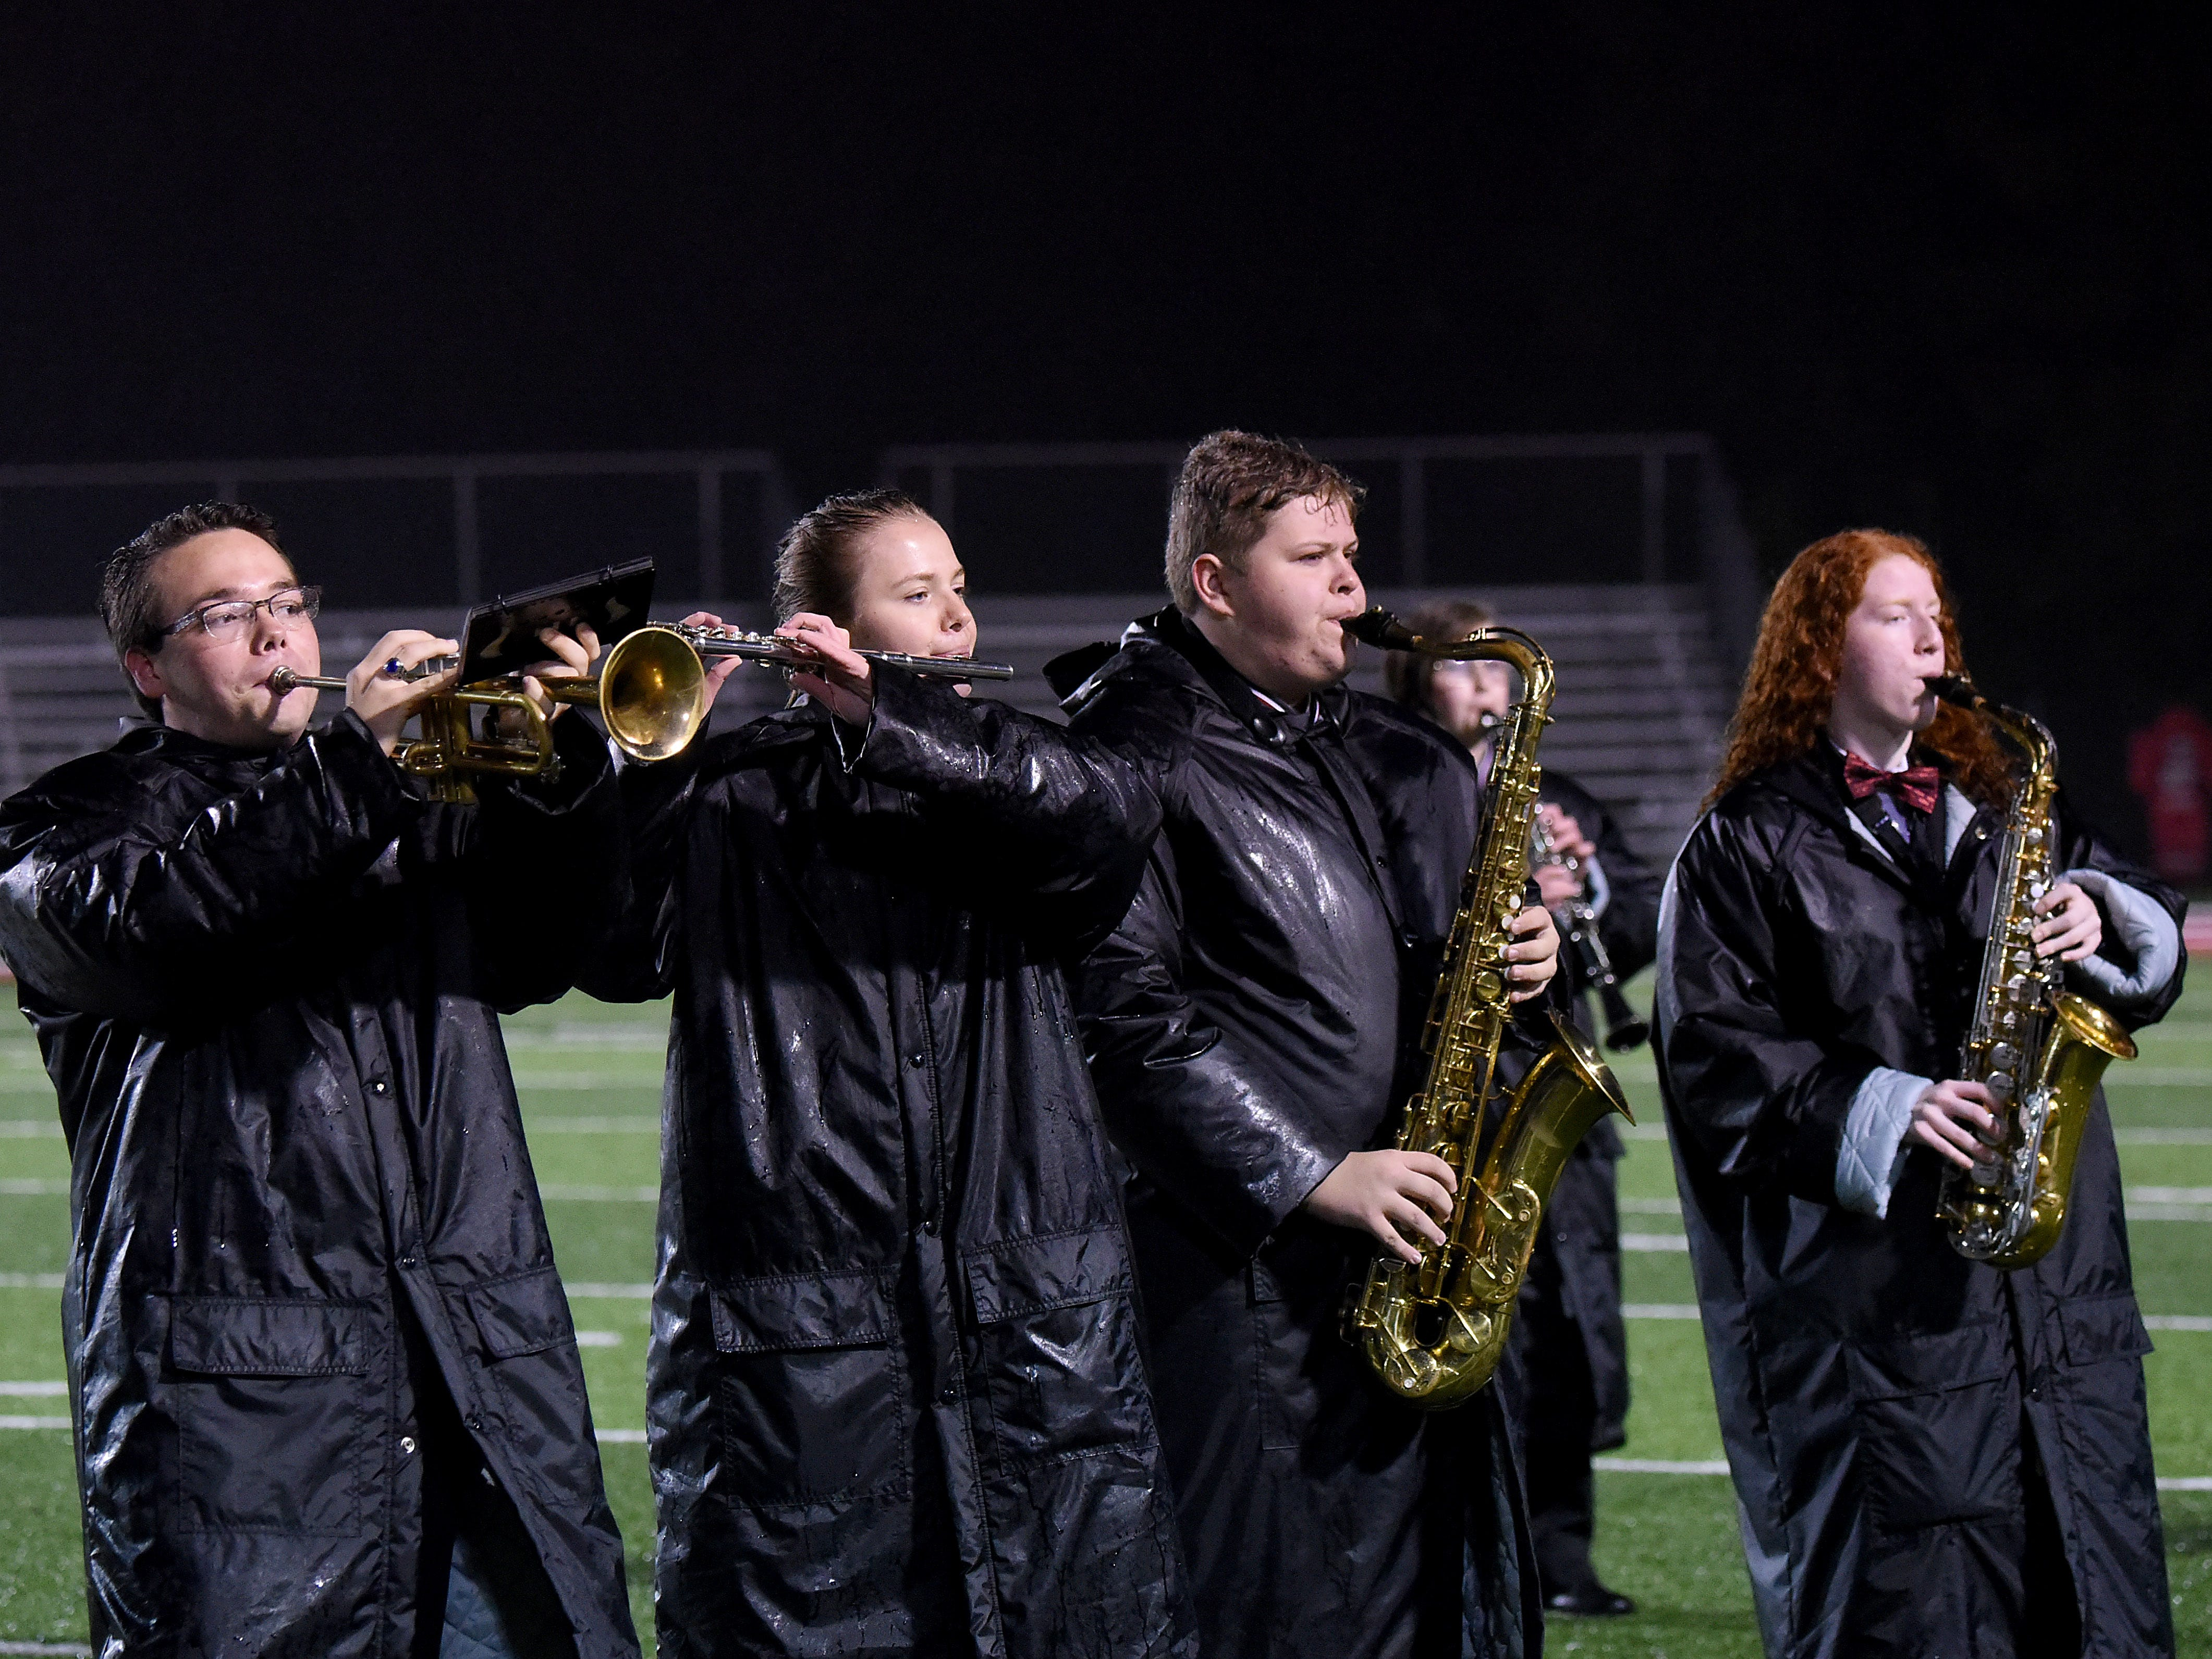 Coshocton High School marching band seniors Tyler Huston, Jenna Stonebraker, Graham Beaumont, and Sarah Heading perform for the last time on their home turf on Friday, Oct. 26, 2018.